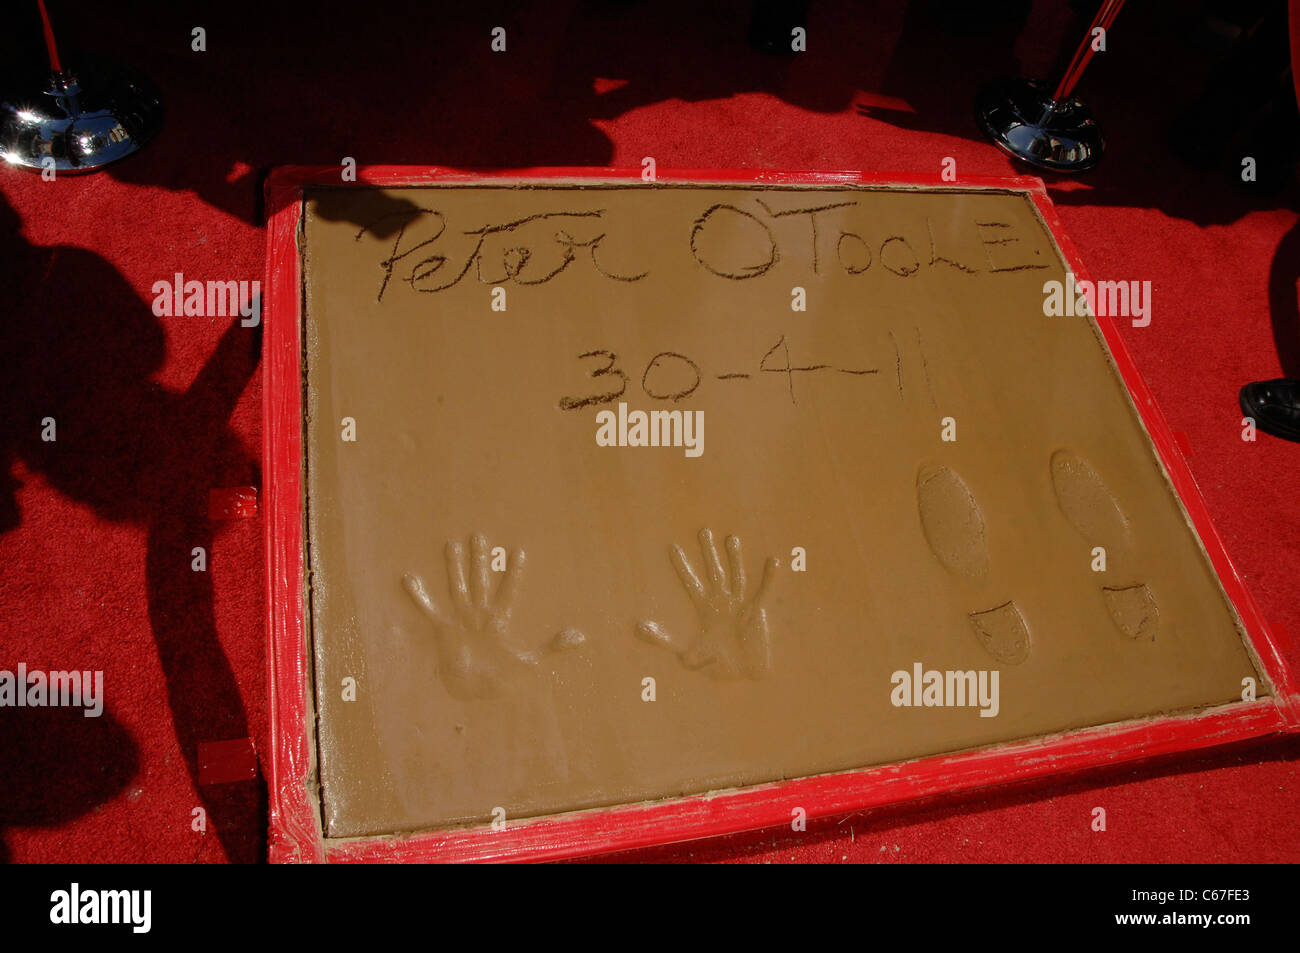 Peter O'Toole Hand and Footprints in attendance for Peter O'Toole Cements His Place Among Hollywood Royalty - Stock Image